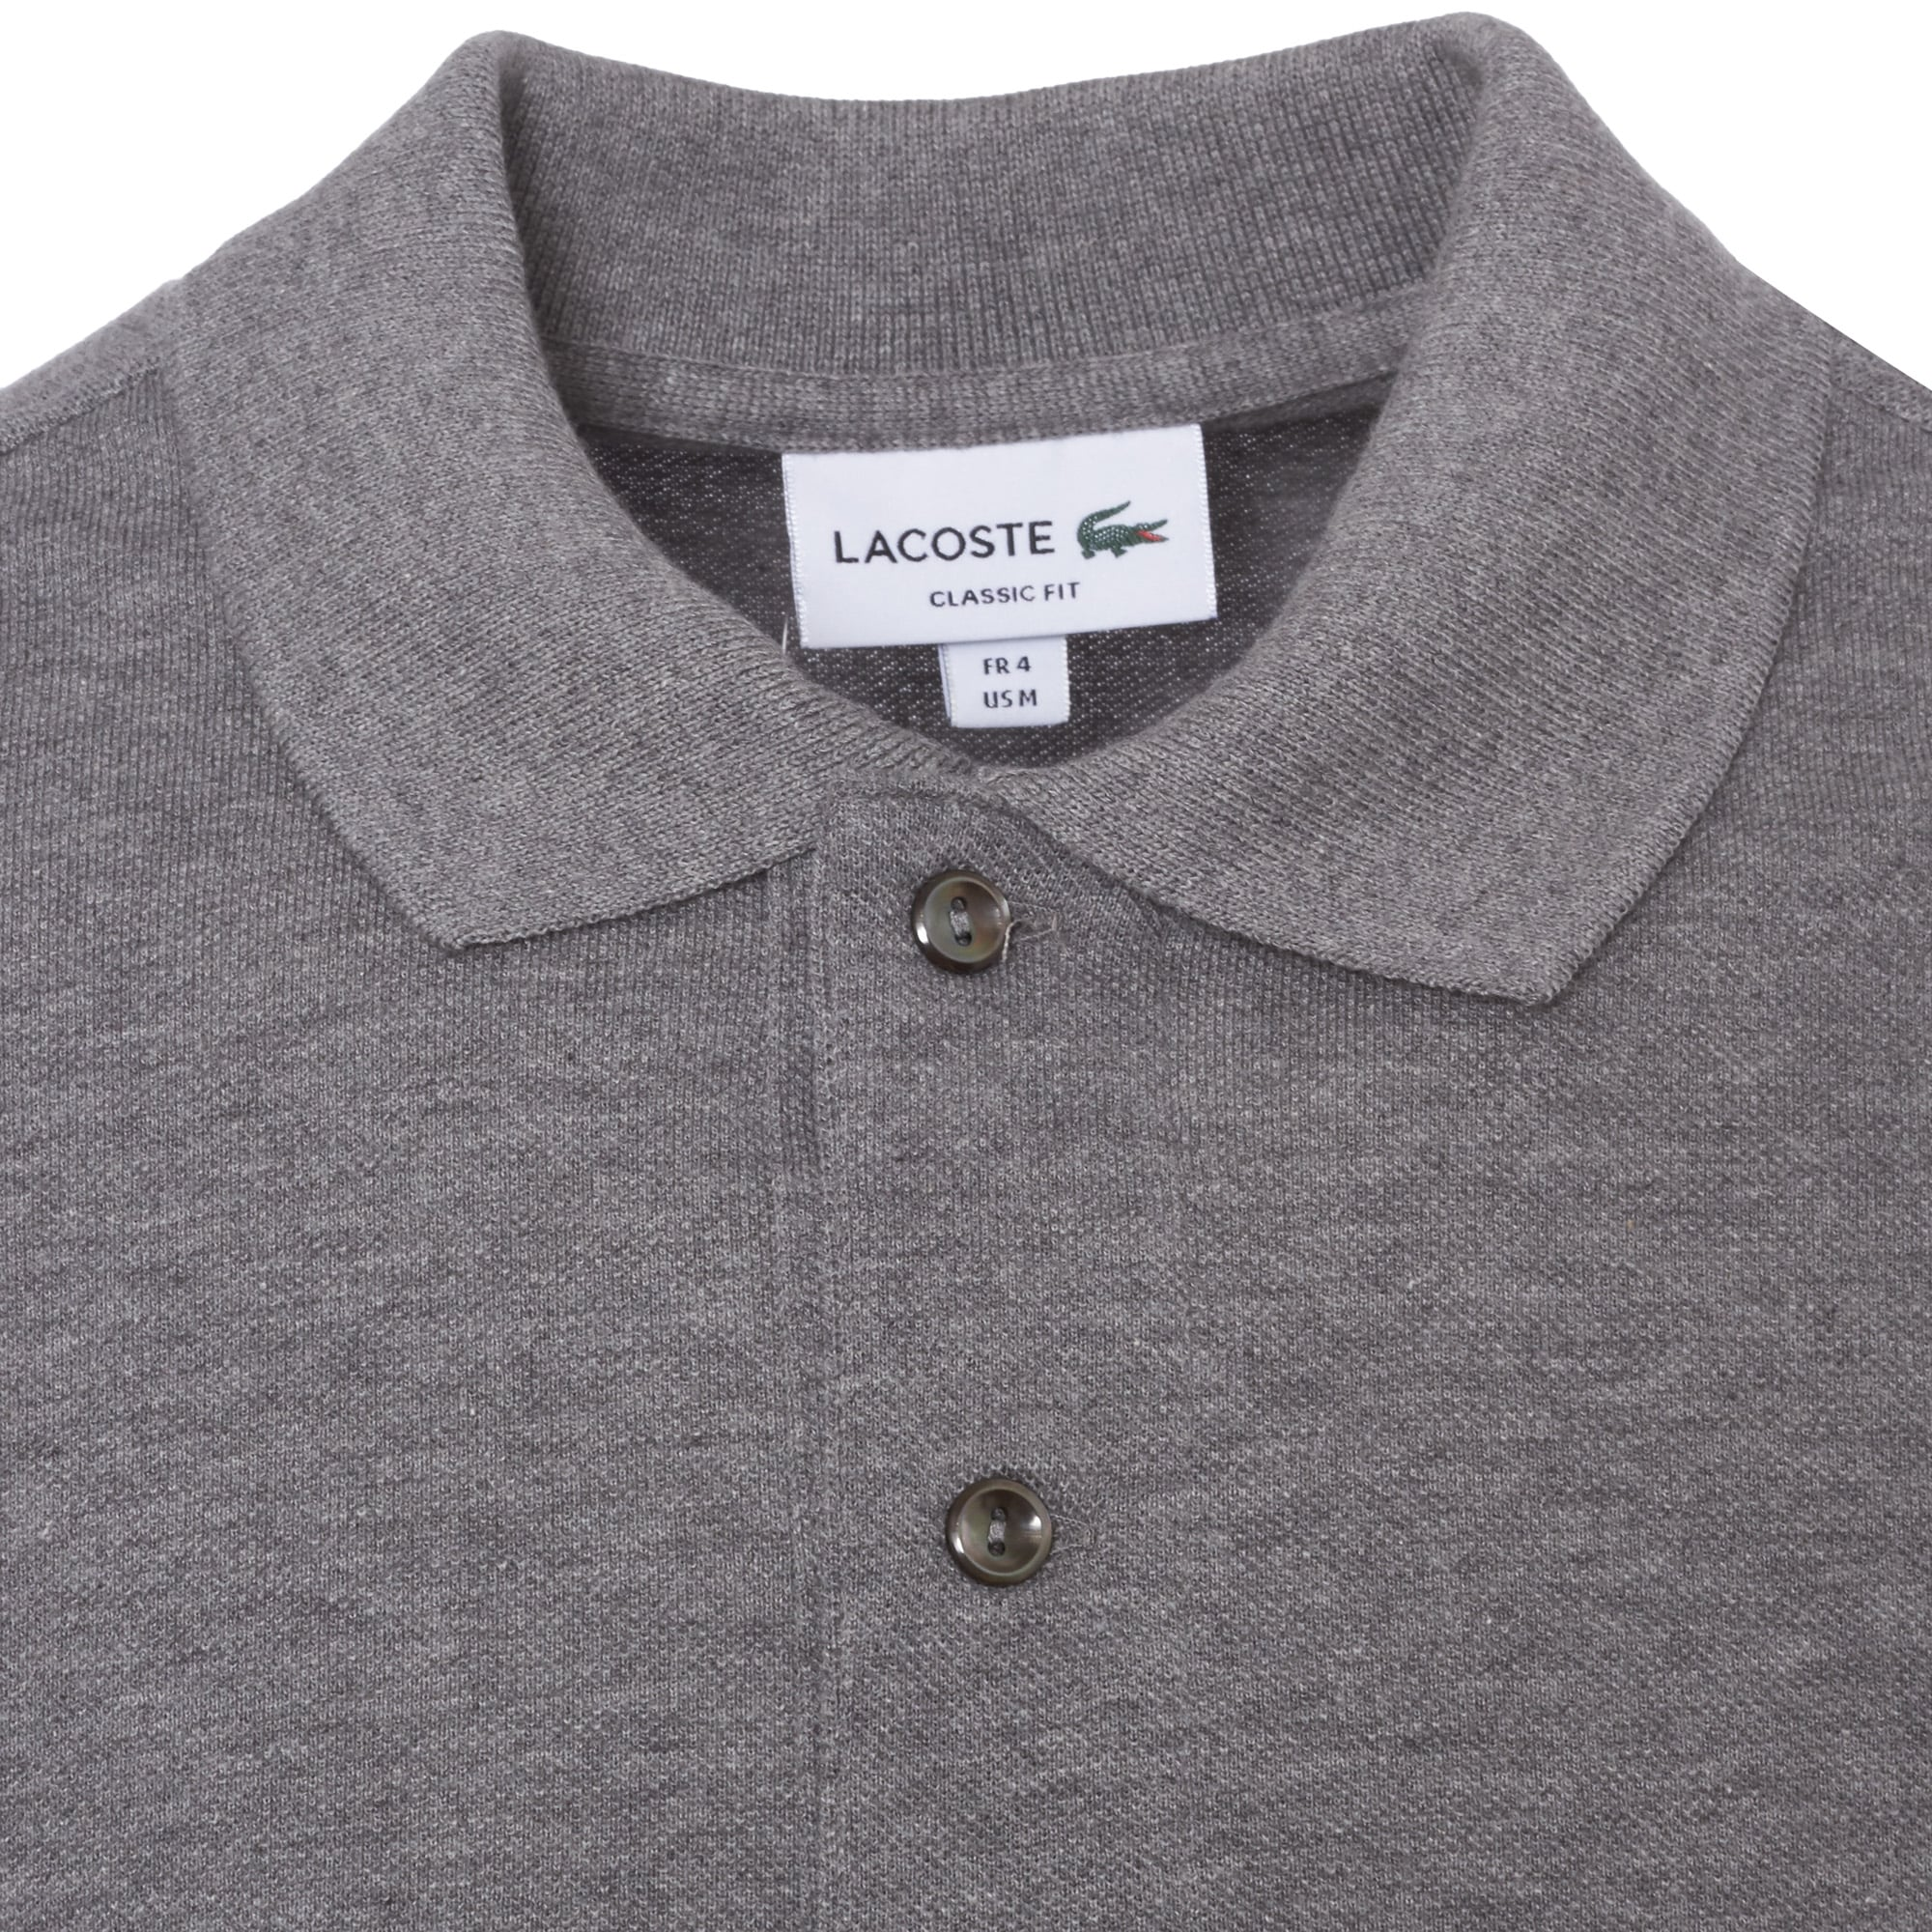 48c4180bc5c Lacoste Clothing Online   Pique Grey Polo Shirt